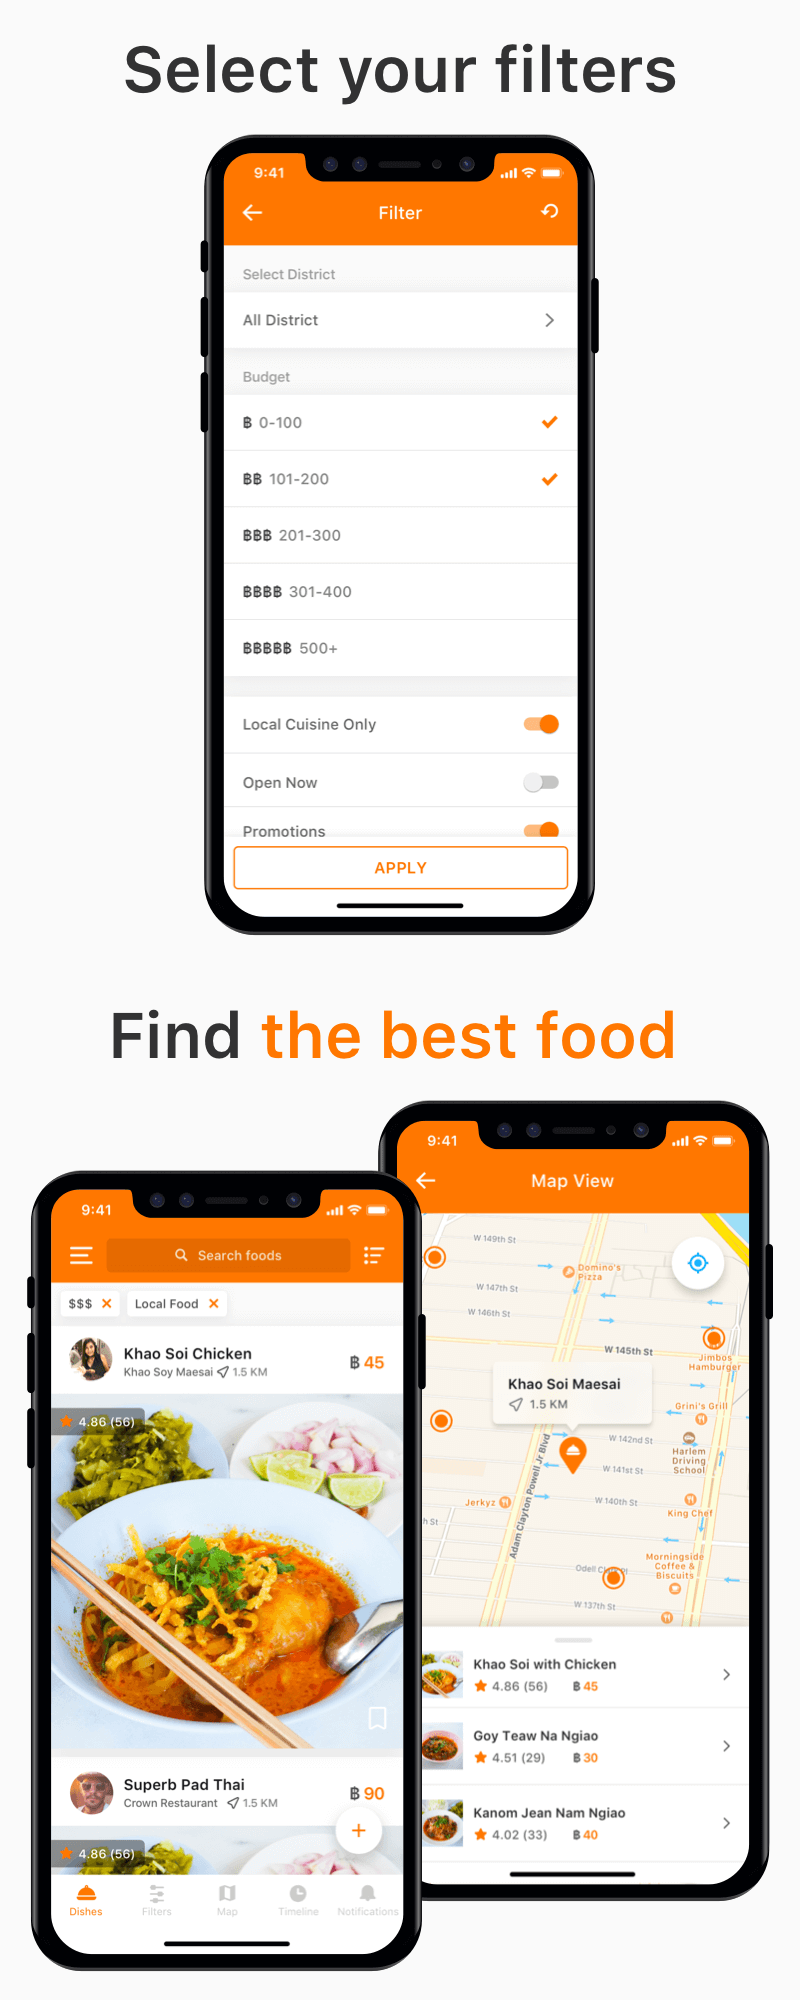 TopTravelFoods food review platform